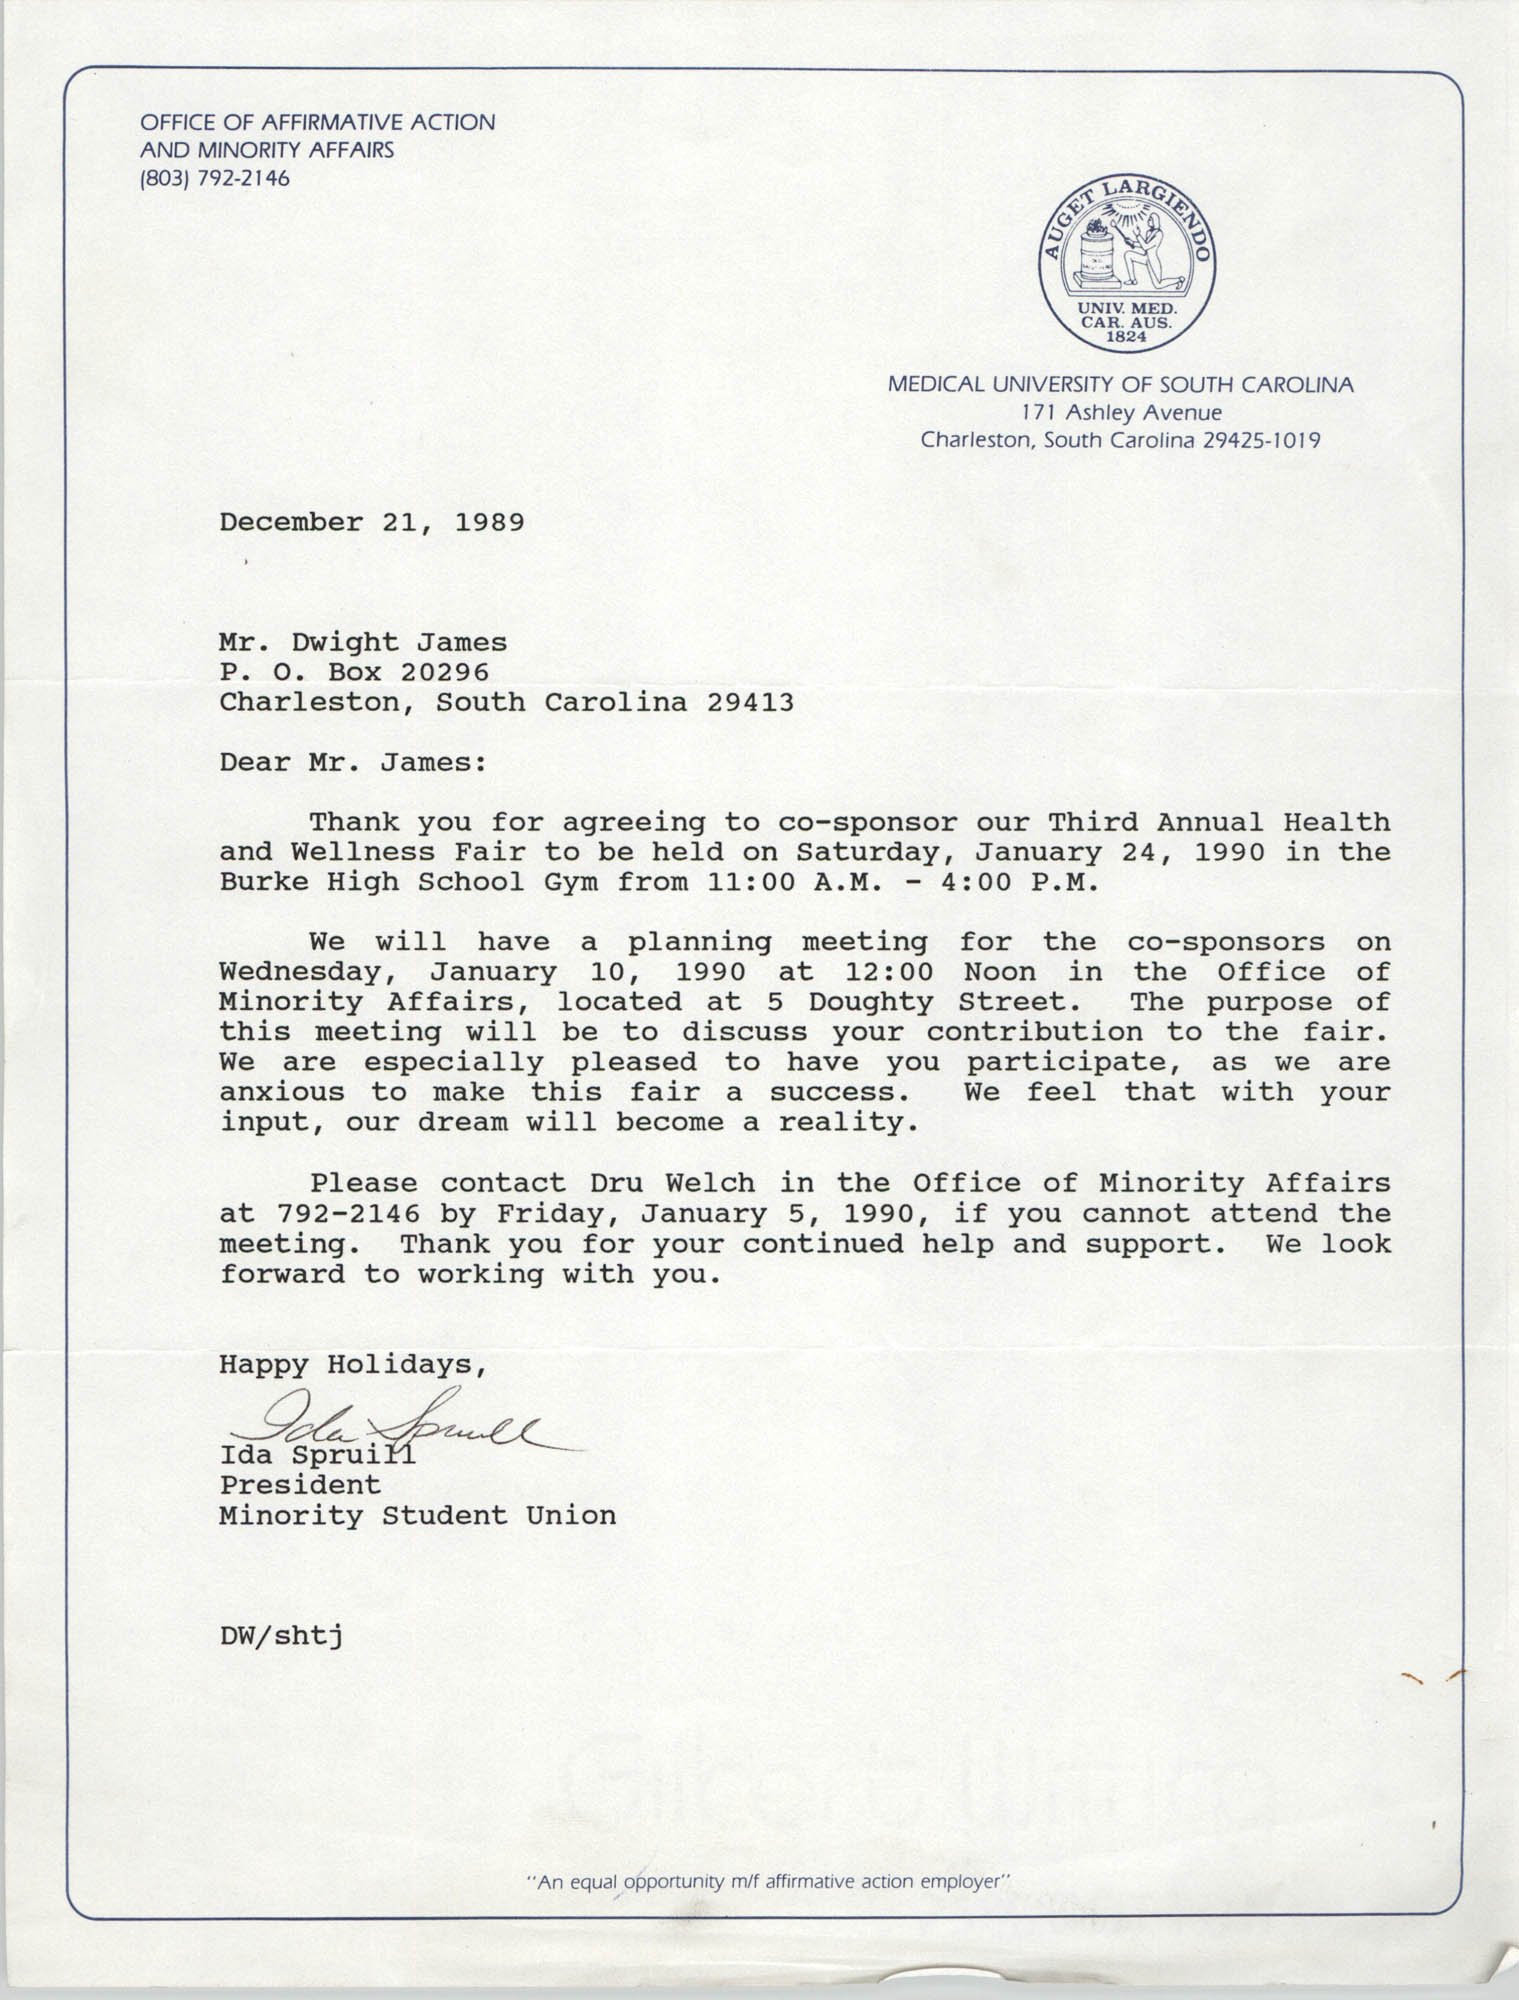 Letter from Ida Spruill to Dwight James, December 21, 1989